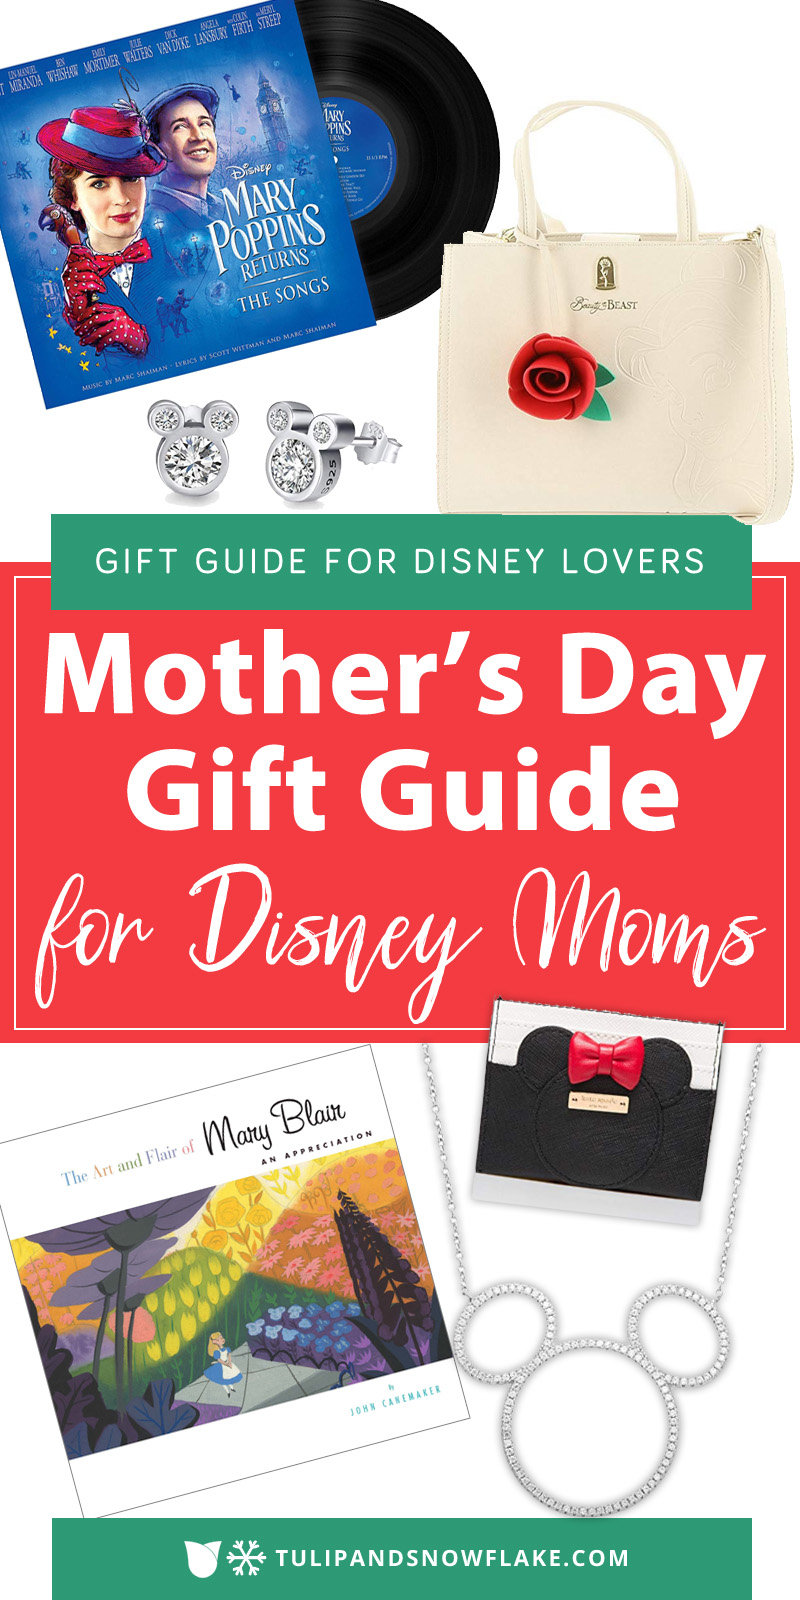 Mother's Day Gift Guide for Disney Moms